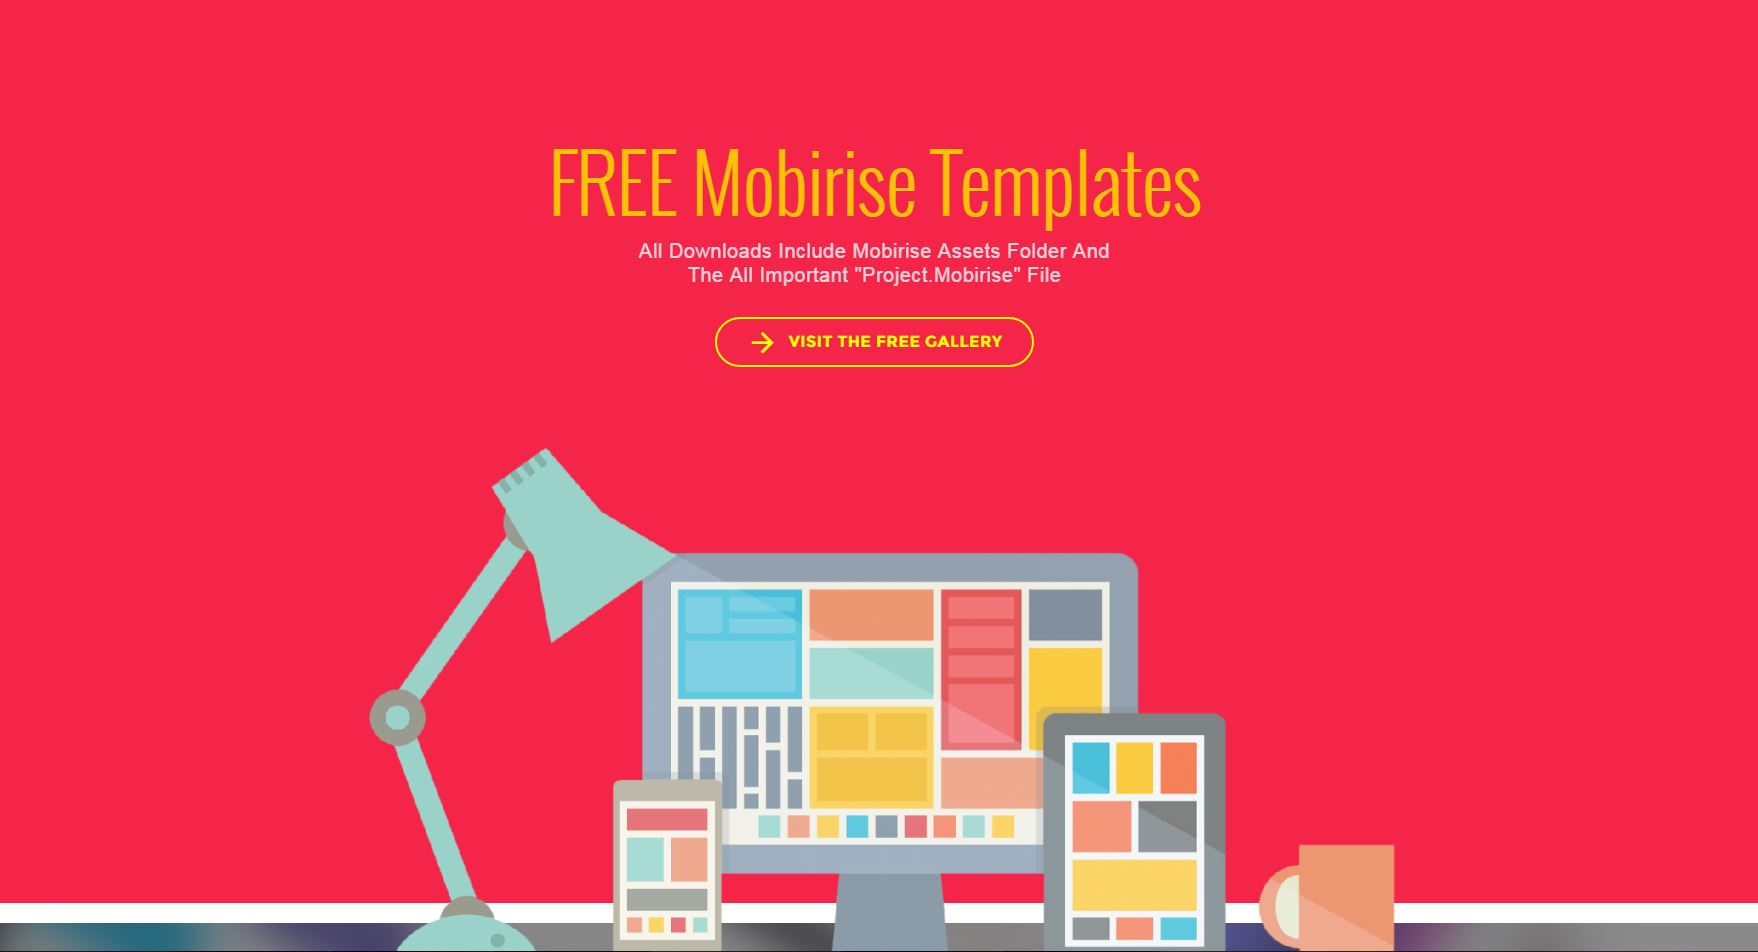 Free Basic Templates For Download For Use With Mobirise